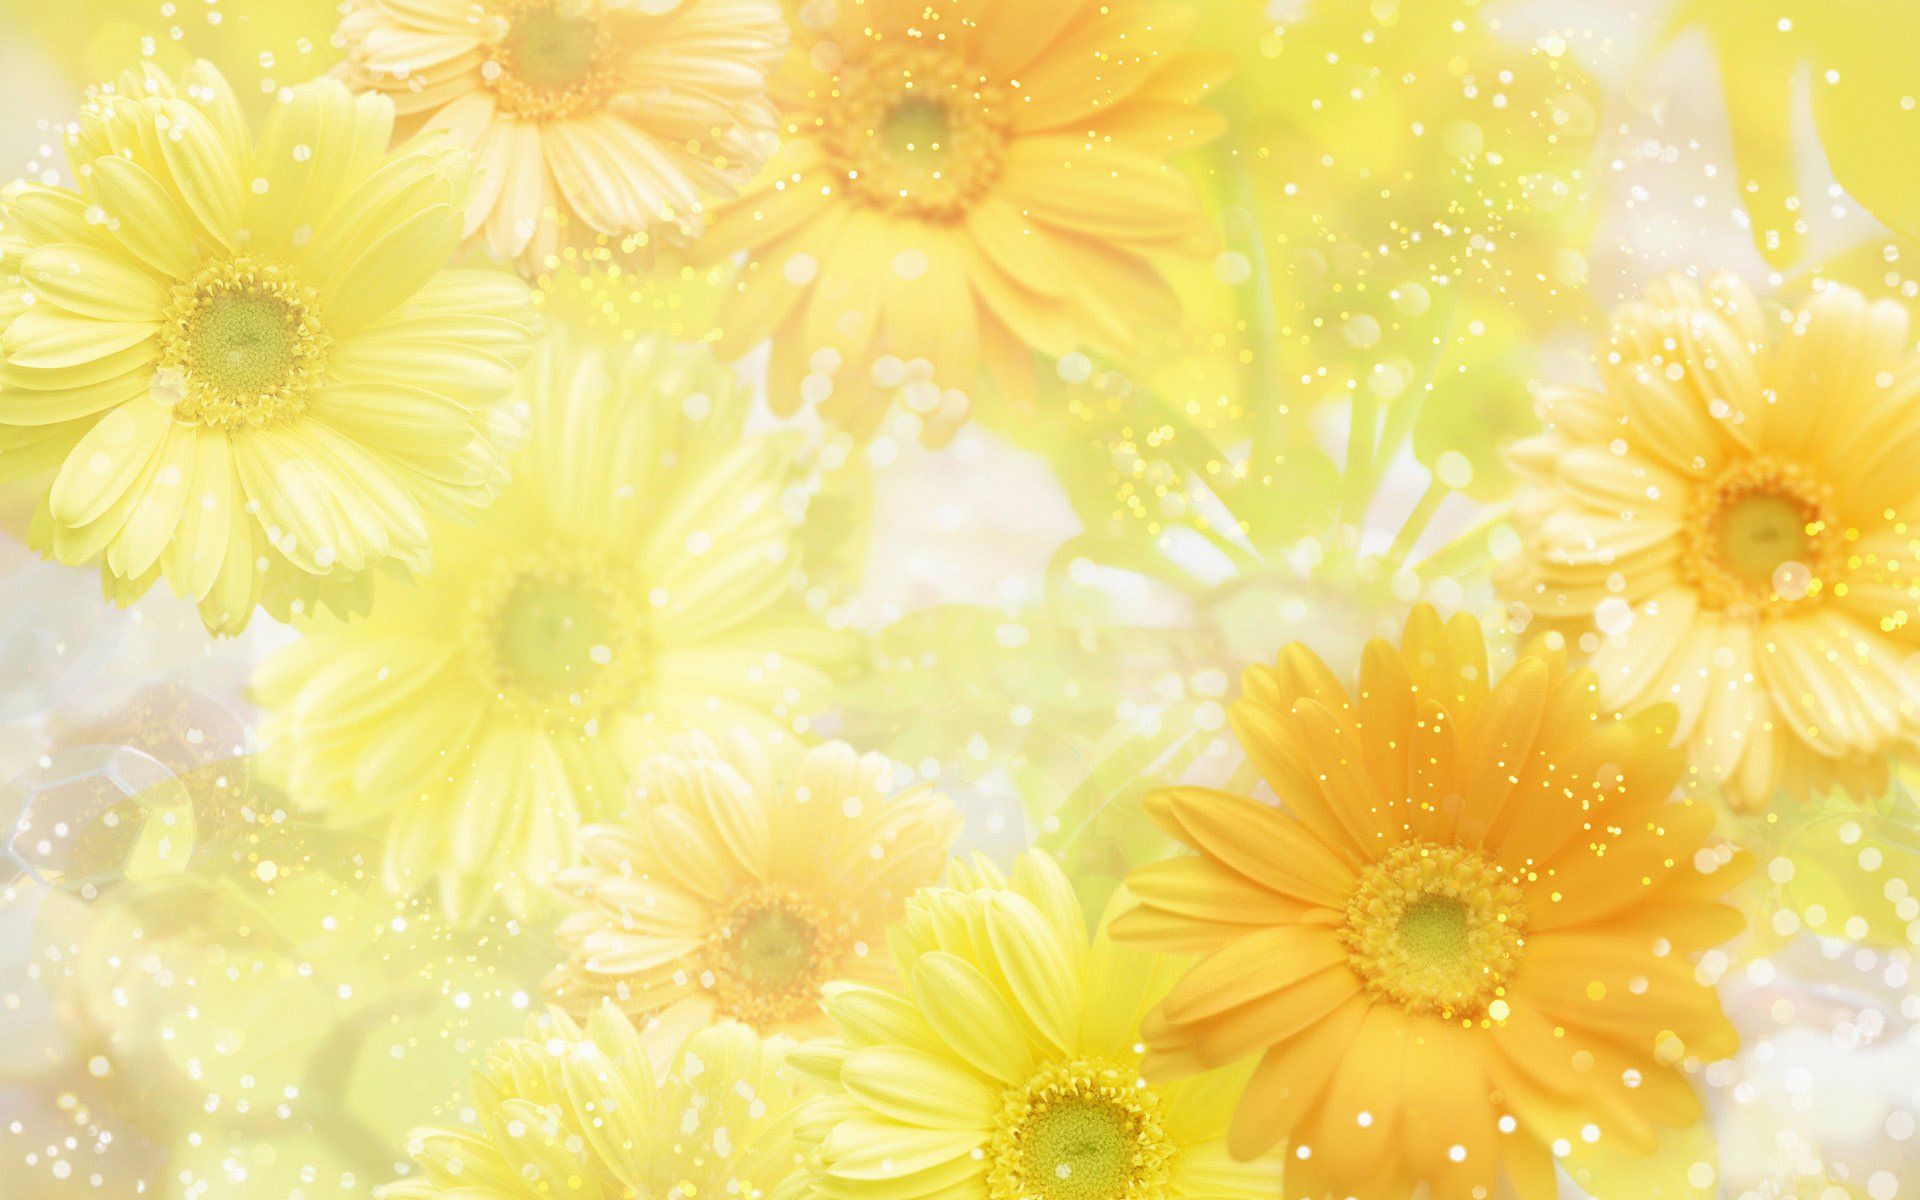 Yellow Images Wallpapers HD Wallpaper And Background Photos